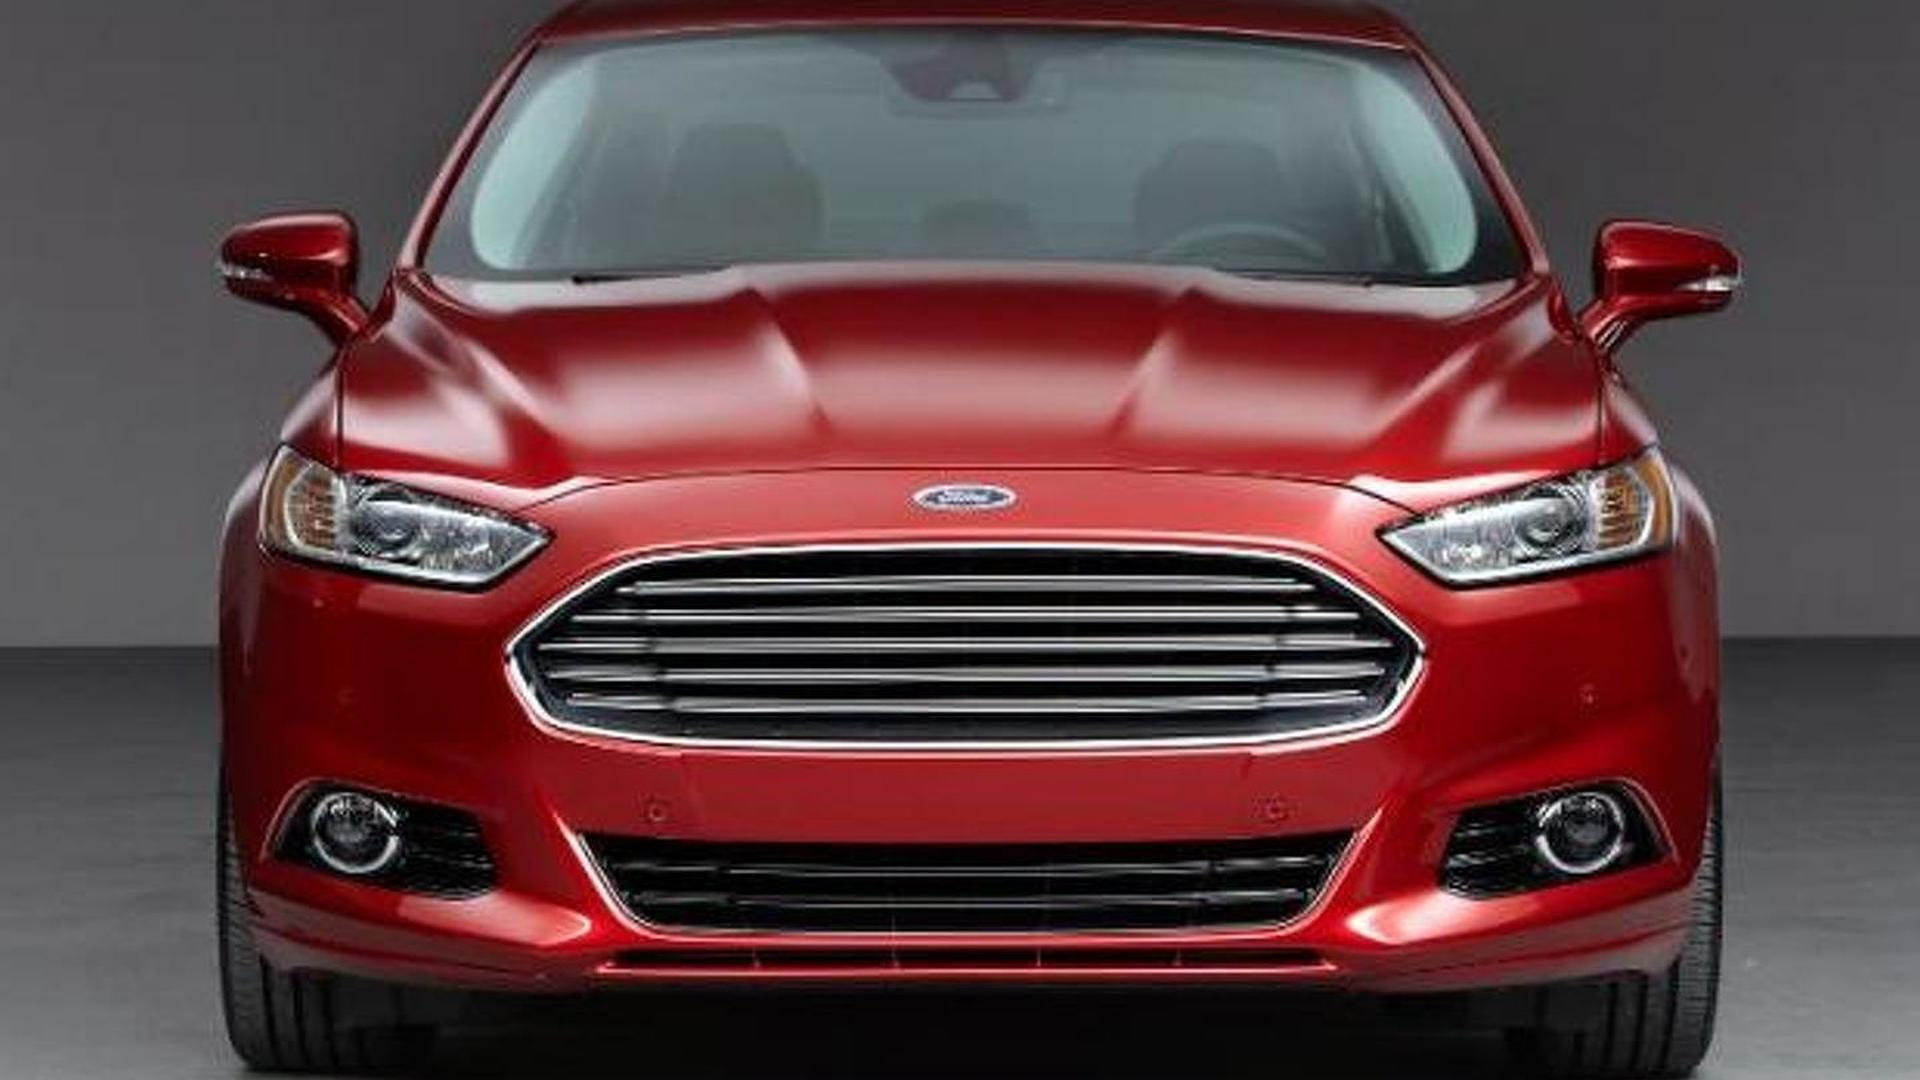 2013 Ford Fusion priced from $22,495